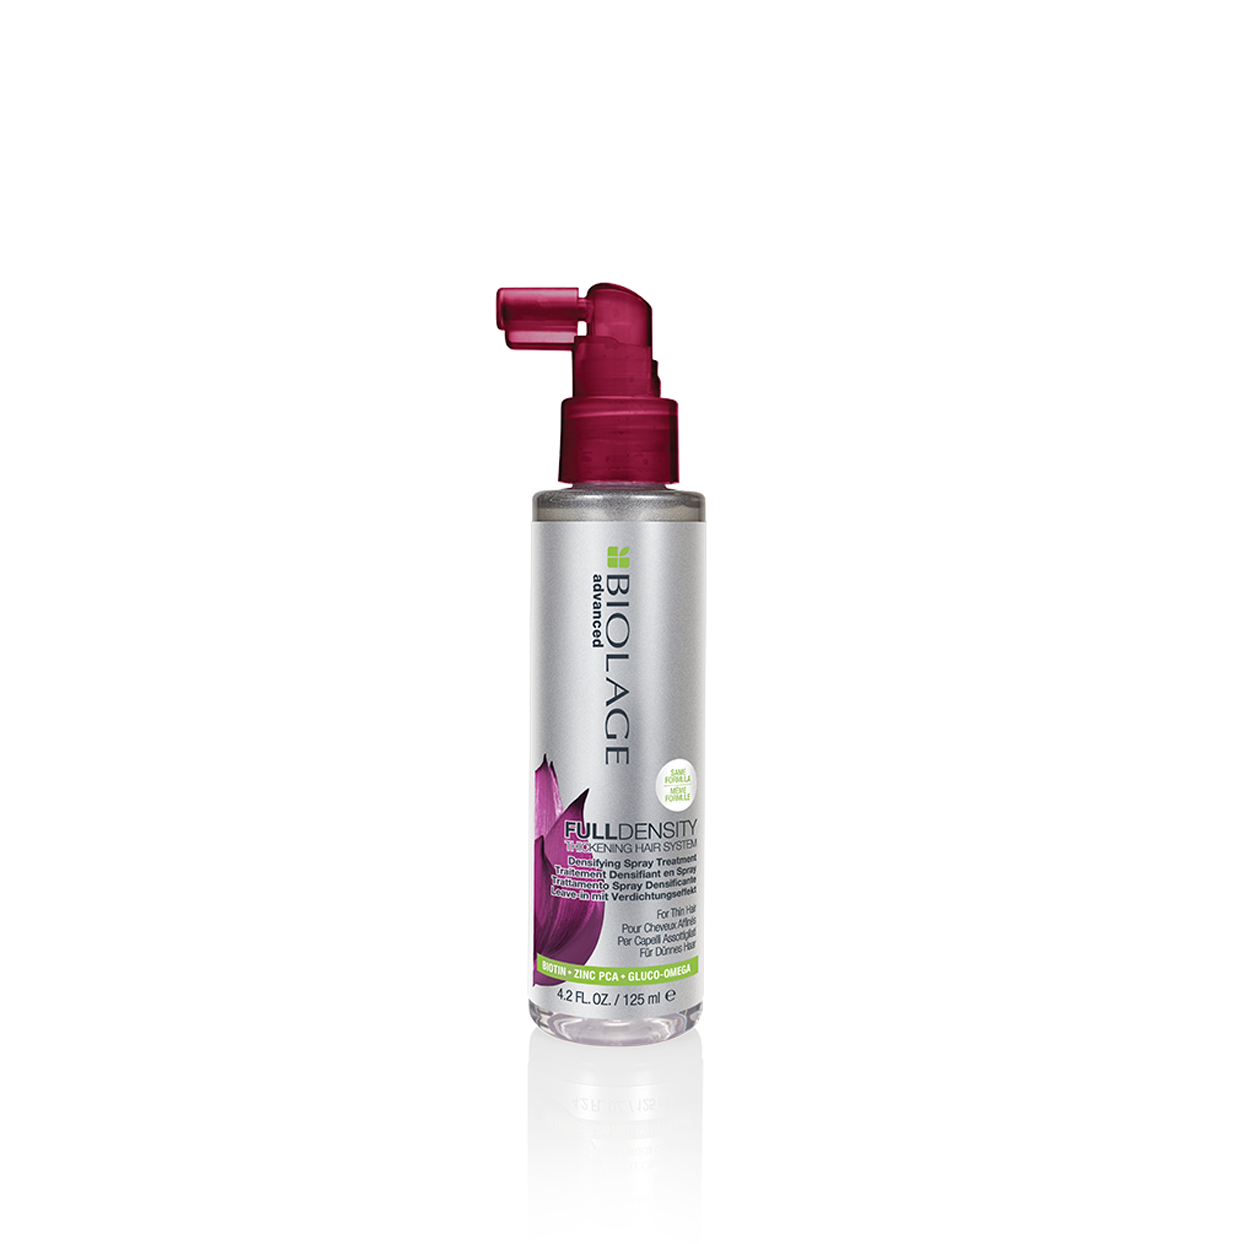 Biolage Advanced FullDensity Thin Hair Densifying Treatment Leave-In Spray for Thin Hair